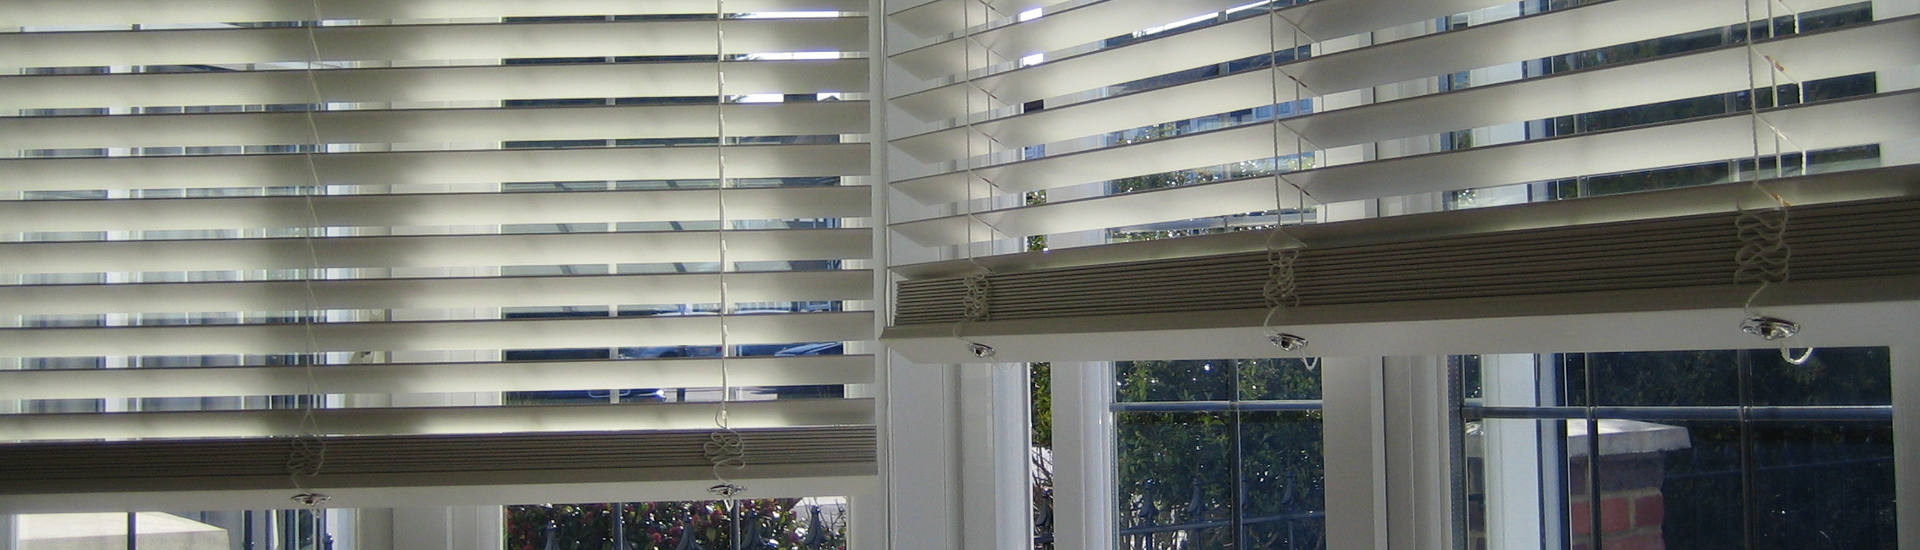 Electric Wood Venetian Blinds Header Image